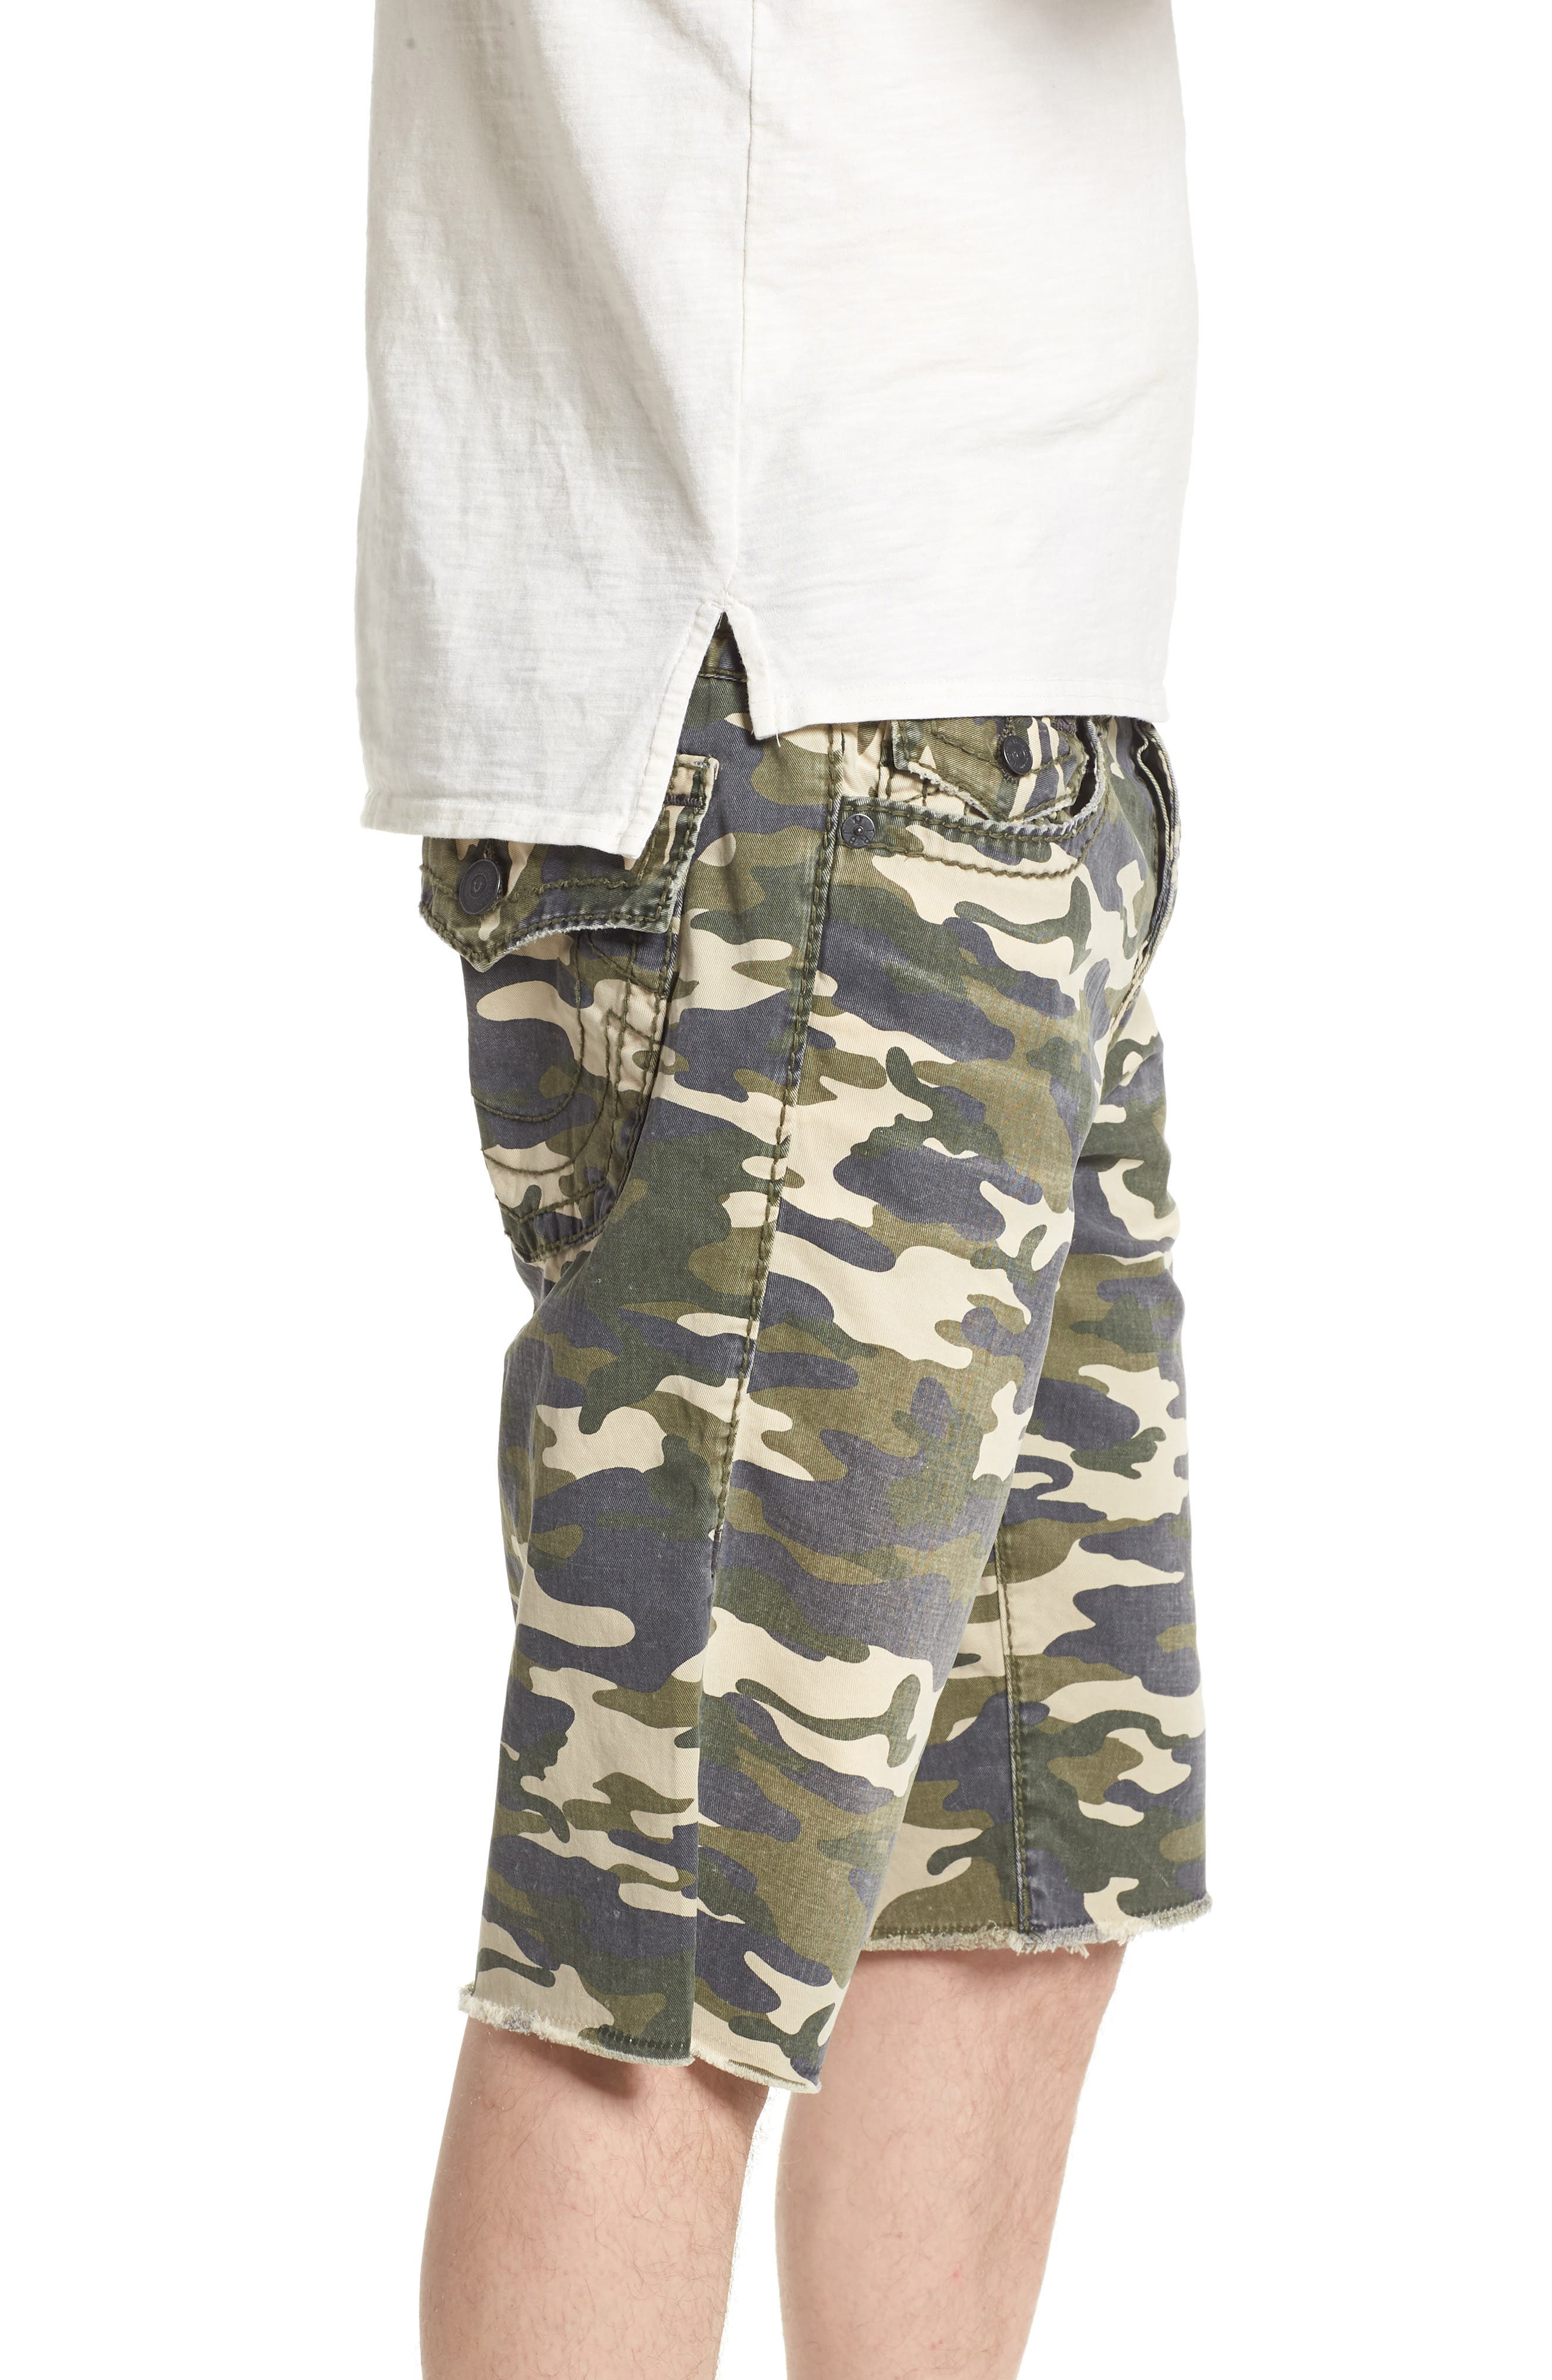 Ricky Relaxed Fit Shorts,                             Alternate thumbnail 3, color,                             TERRITORY